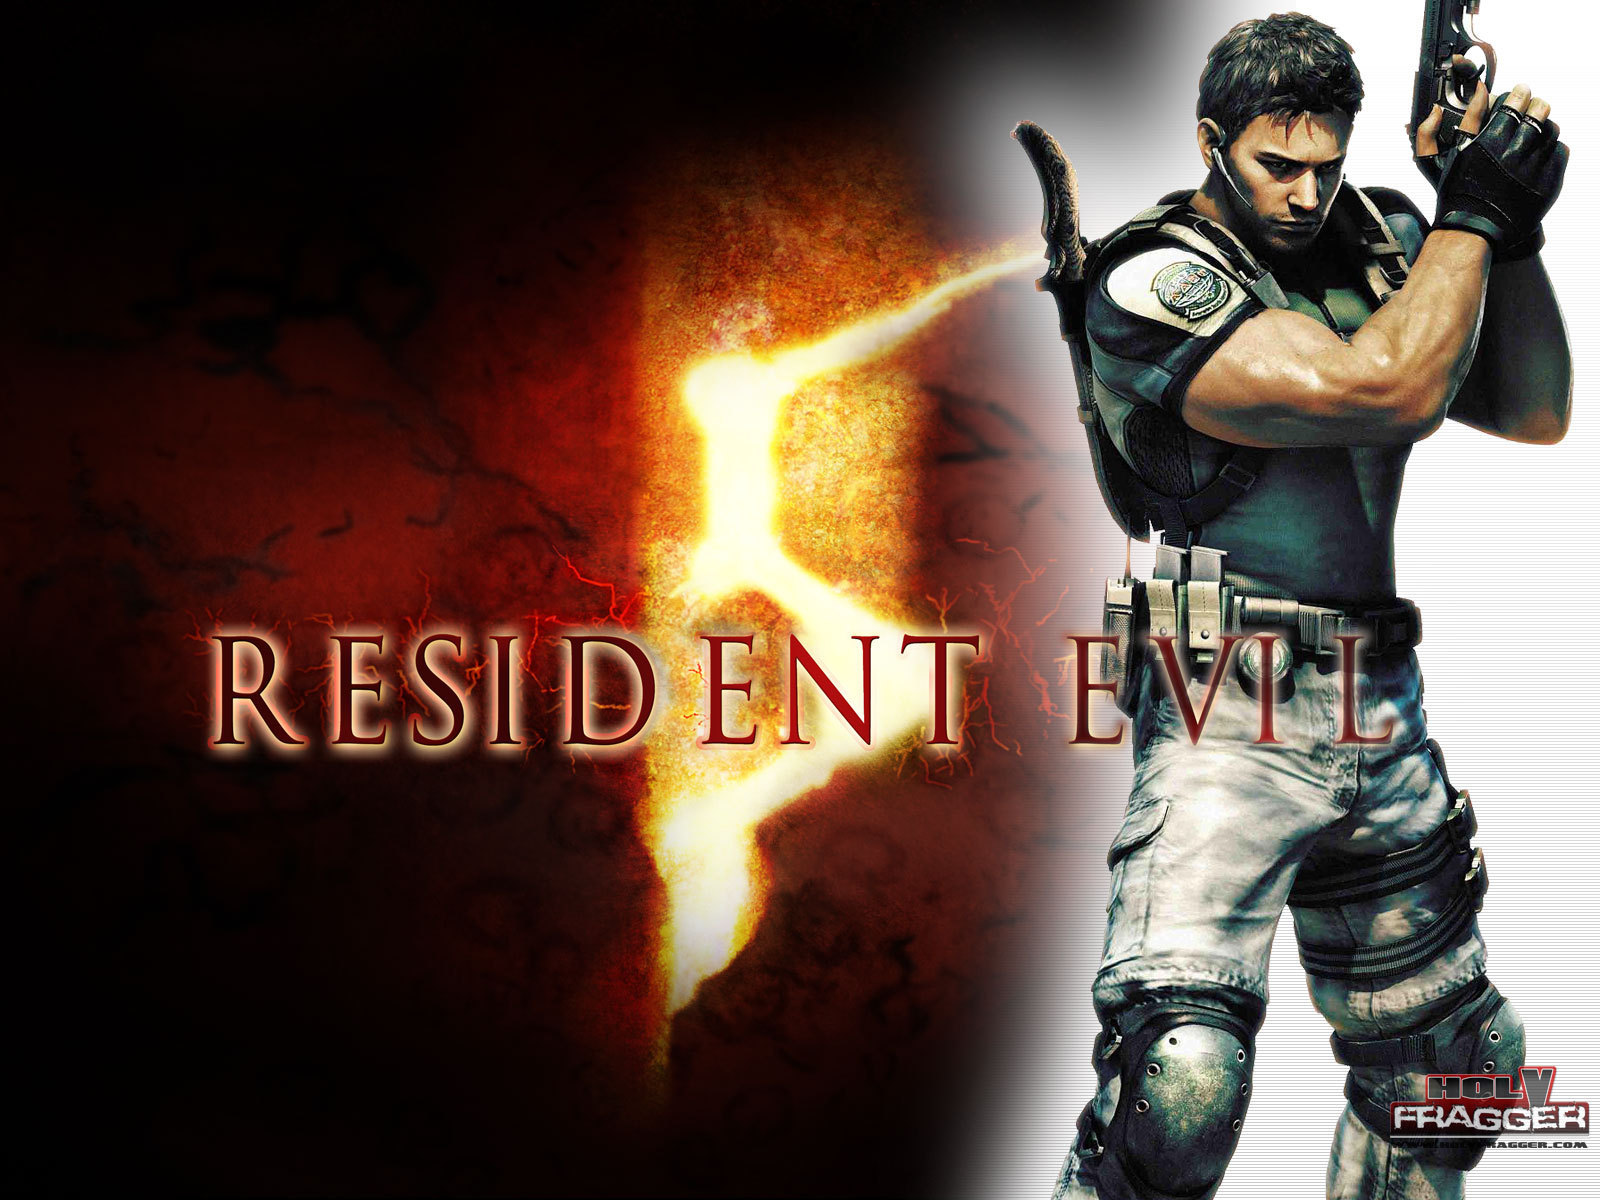 resident evil Resident evil face your fears in the ultimate experience of suspense and terror blood-thirsty zombies mutant beasts monstrous serpent untold mysteries lurk around every corner.